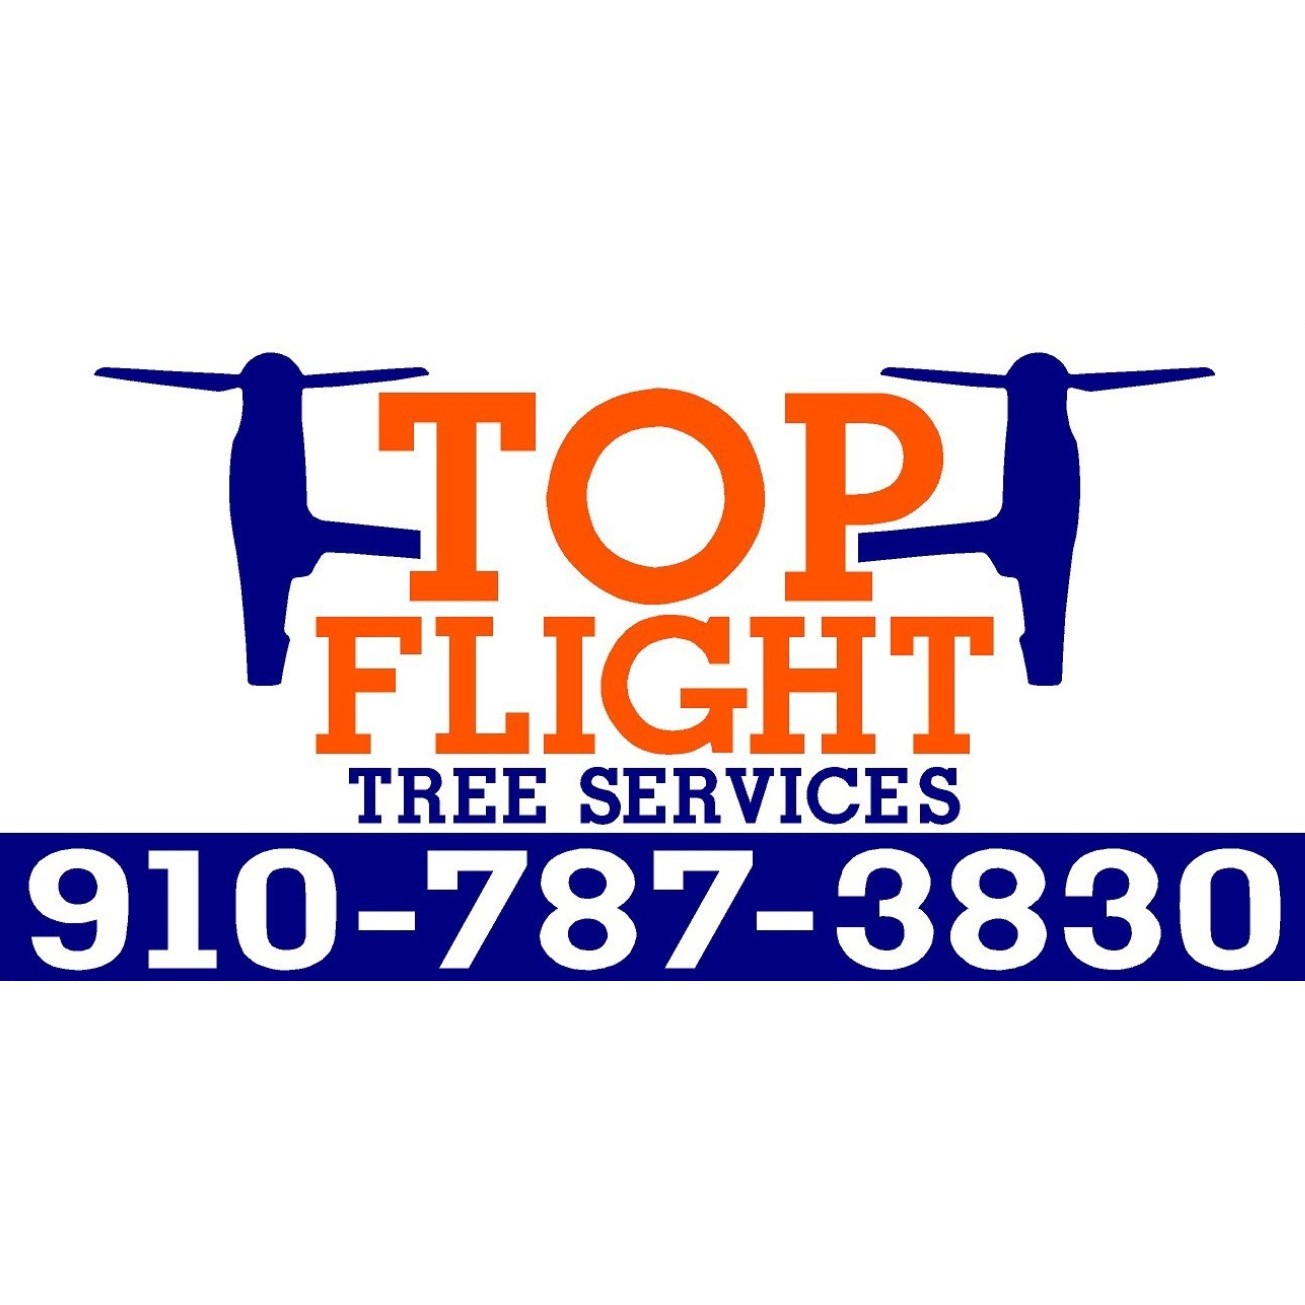 Top Flight Tree Service LLC